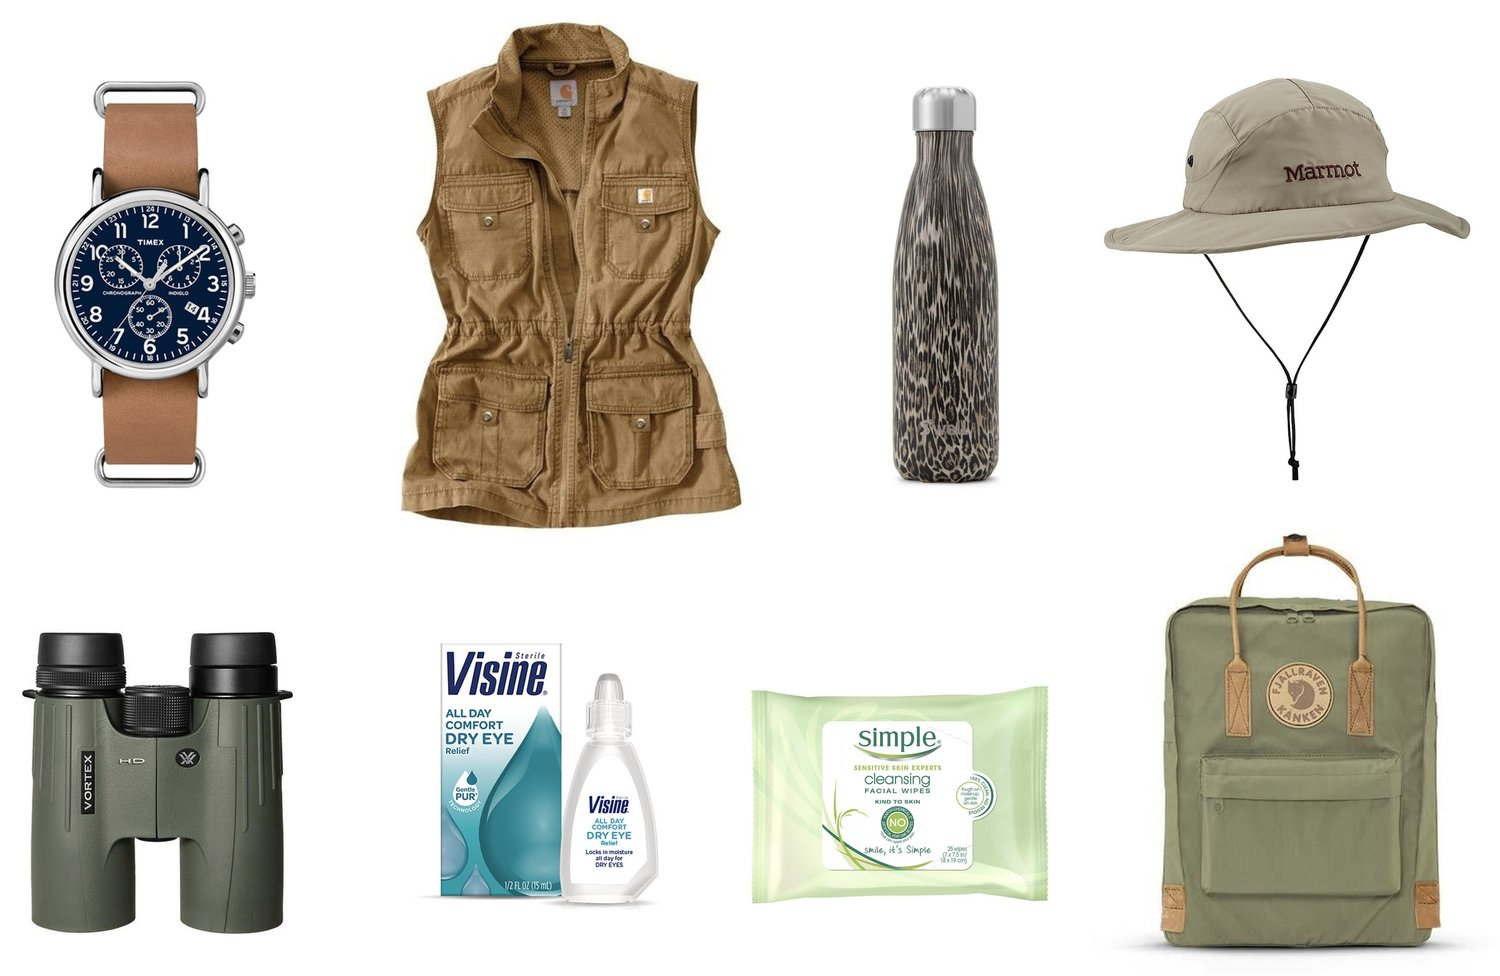 1)  Timex Weekender Chrono Oversized Watch  2)  Carhartt Women's El Paso Utility Vest  3)  S'well Khaki Cheetah Bottle  4)  Marmot Simpson Sun Hat  5)  Vortex Viper HD Binoculars  6)  Visine All Day Comfort Dry Eye Relief  7)  Simple Cleansing Facial Wipes  8)  Fjallraven Kanken No.2 16L Backpack in Green